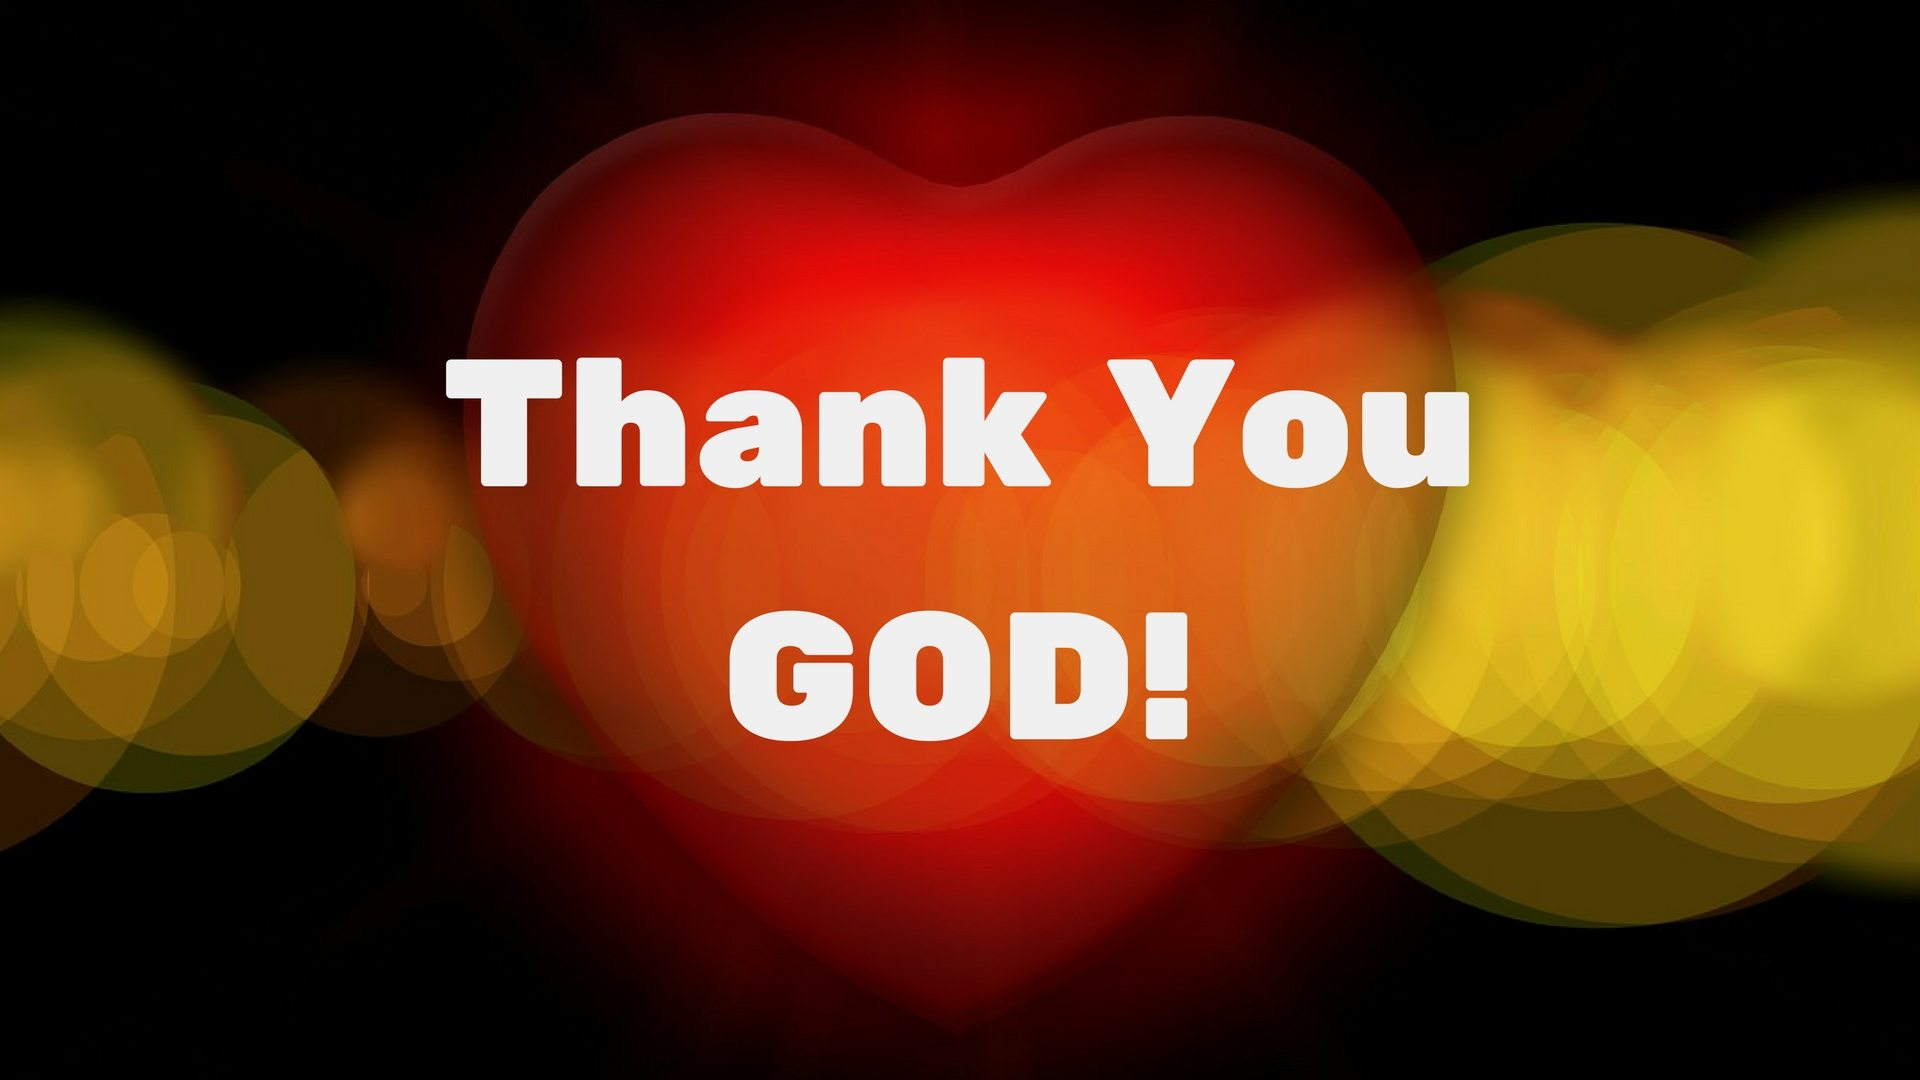 Thank You GOD!-2 - Pixabay Canva